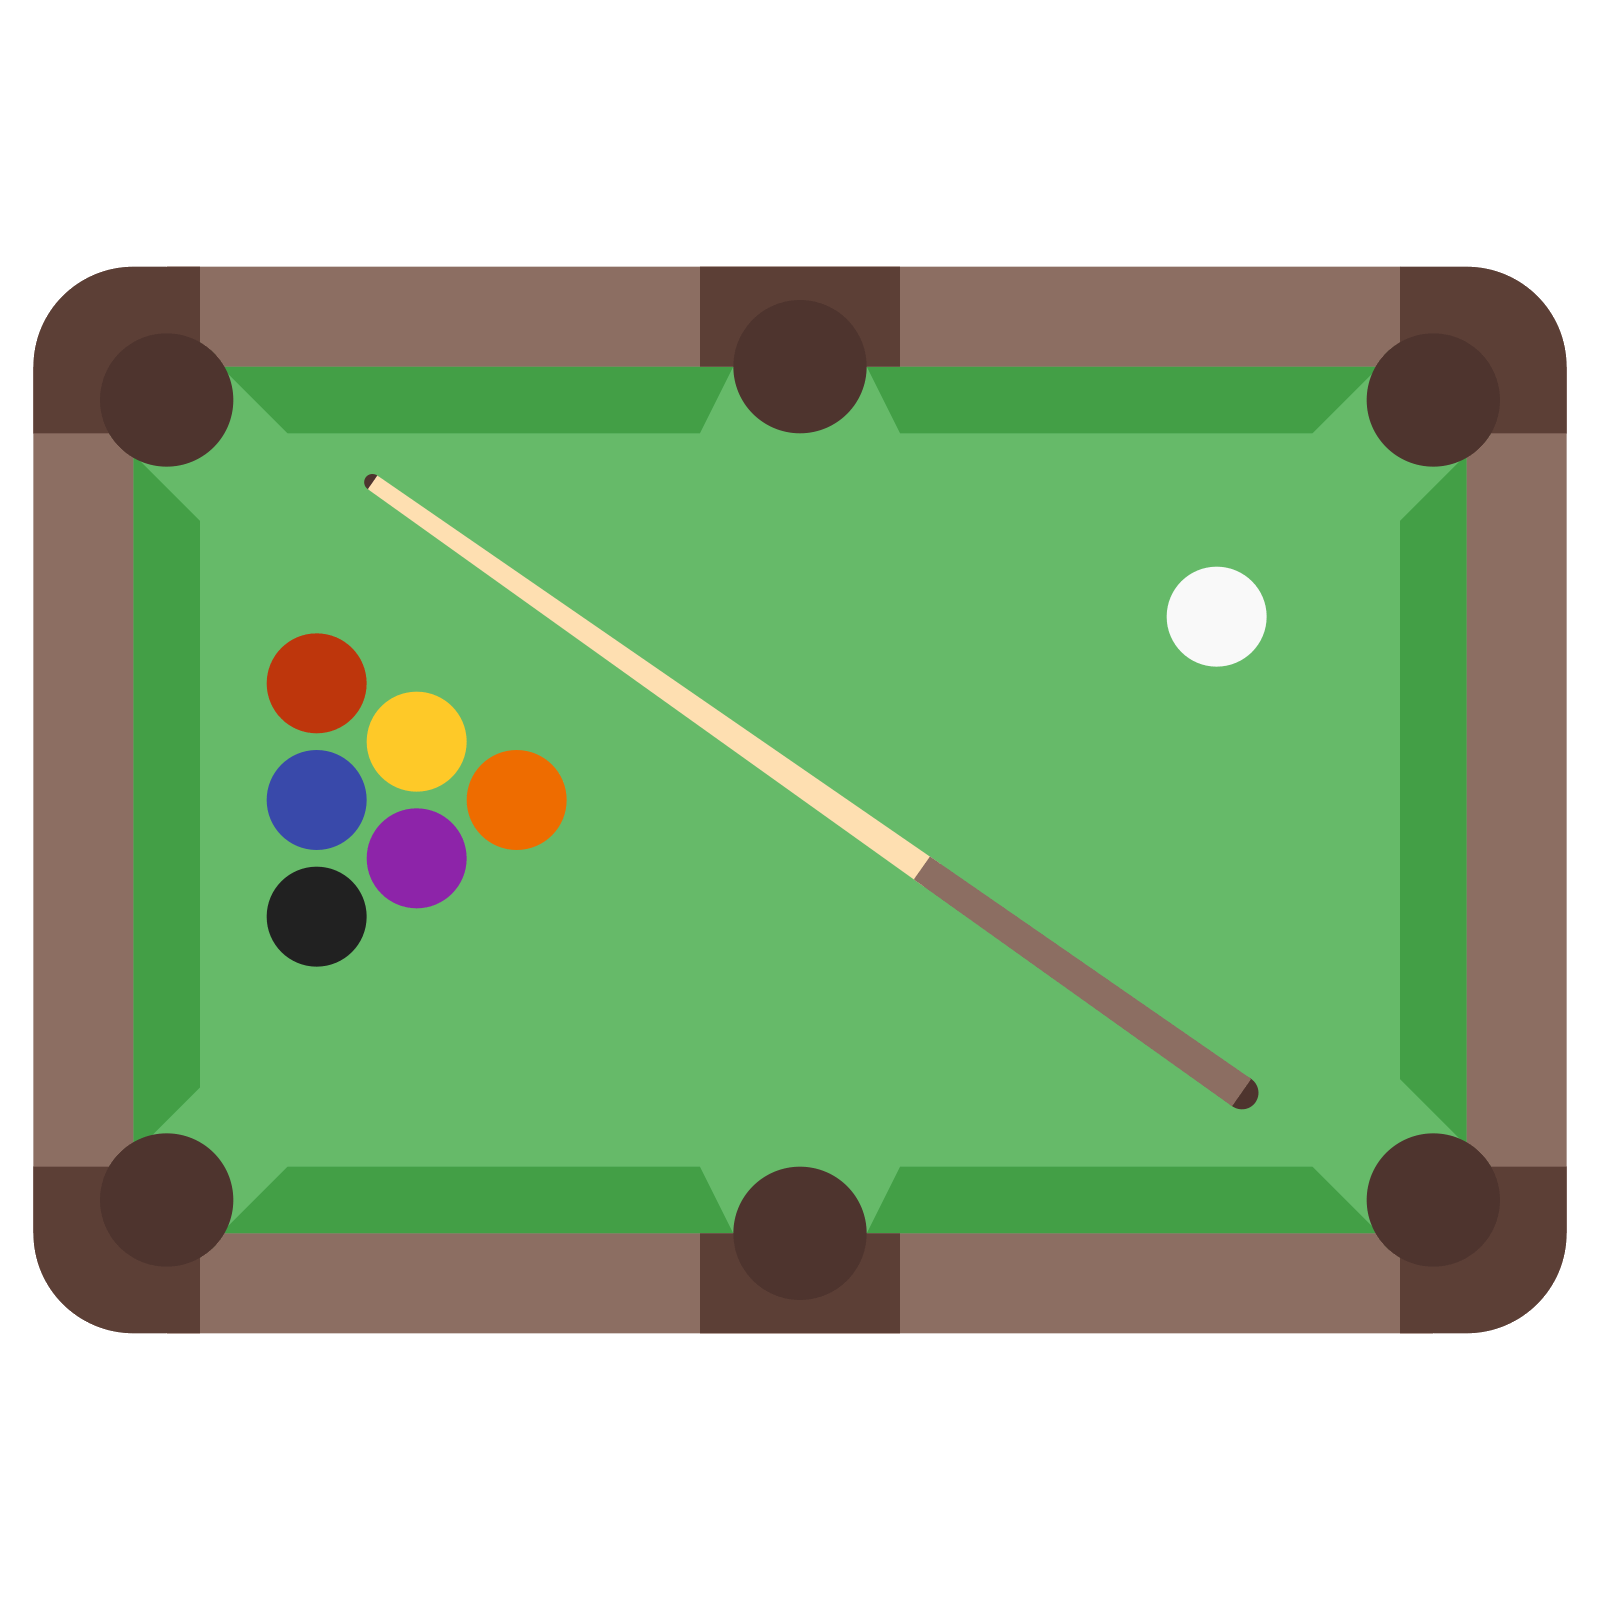 Movers logo . Billiards clipart pool table